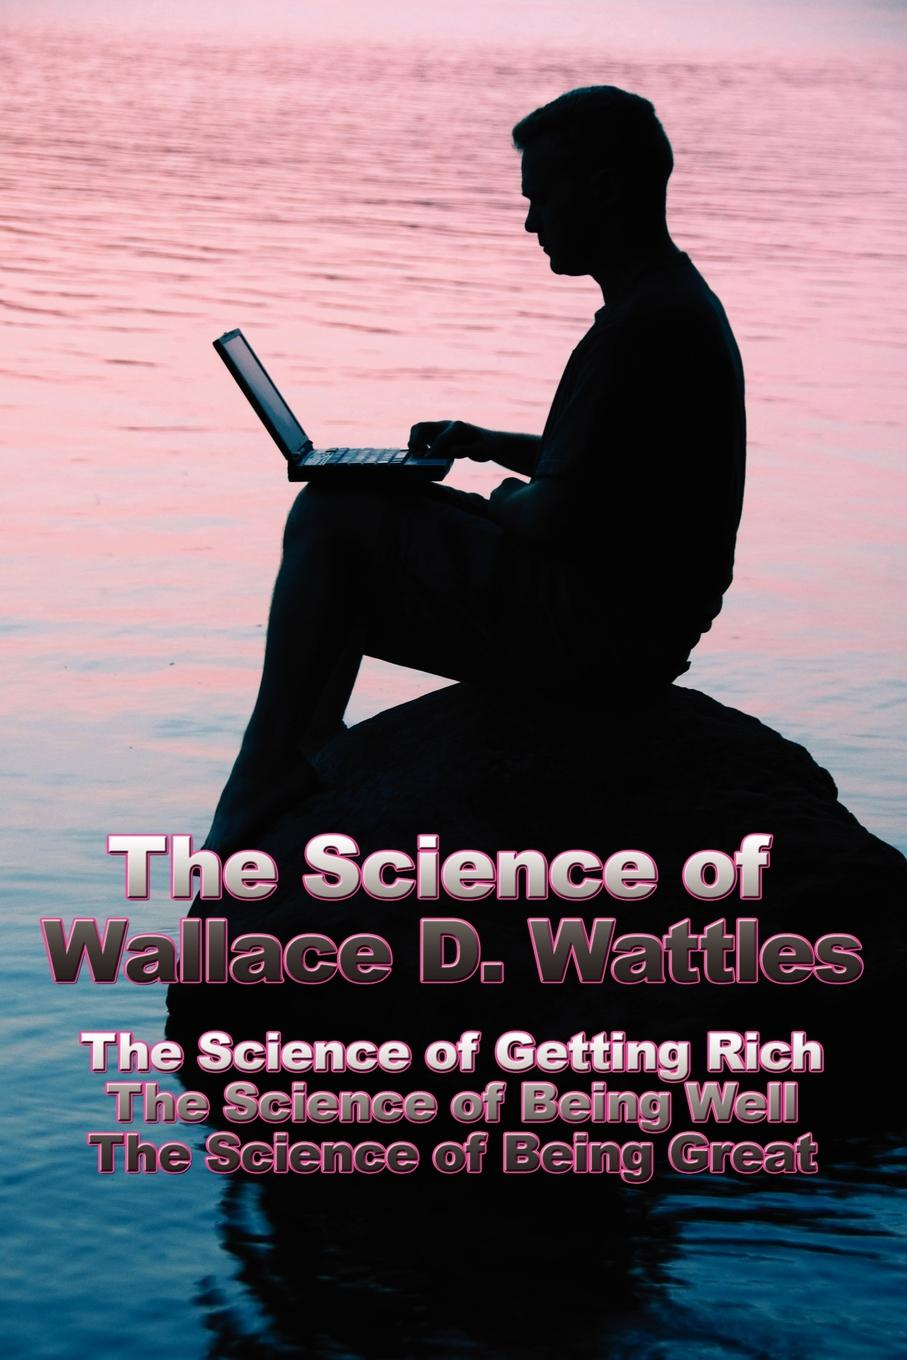 Wallace D. Wattles The Science of Wallace D. Wattles. The Science of Getting Rich, The Science of Being Well, The Science of Being Great цена